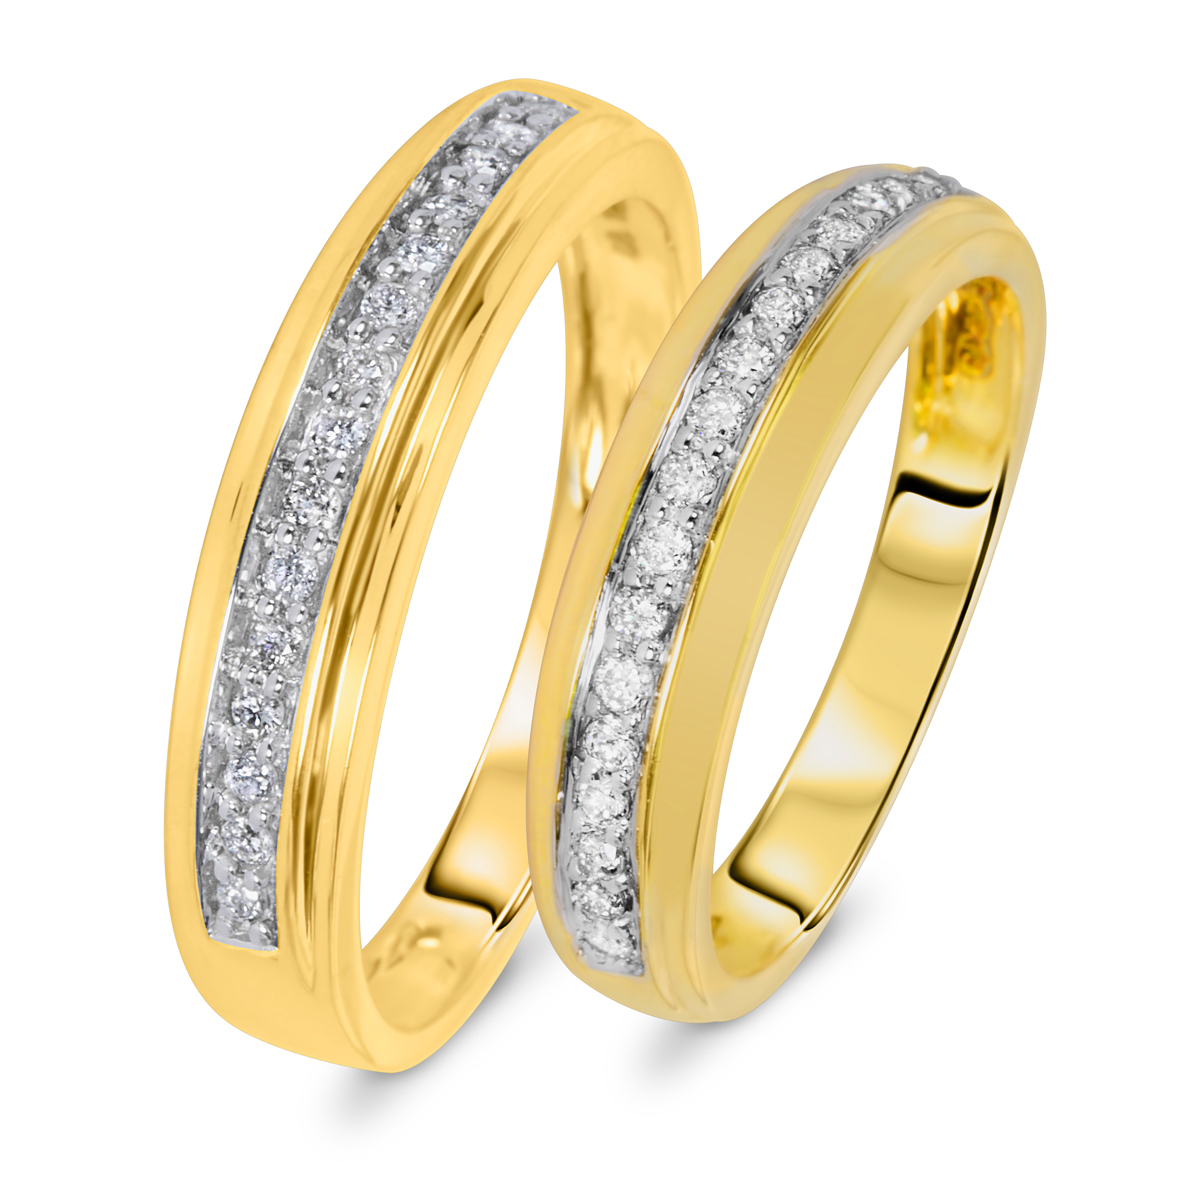 rings set besttohave meteorite matching carbide and image wedding hers tungsten mens jewellery his ring couple